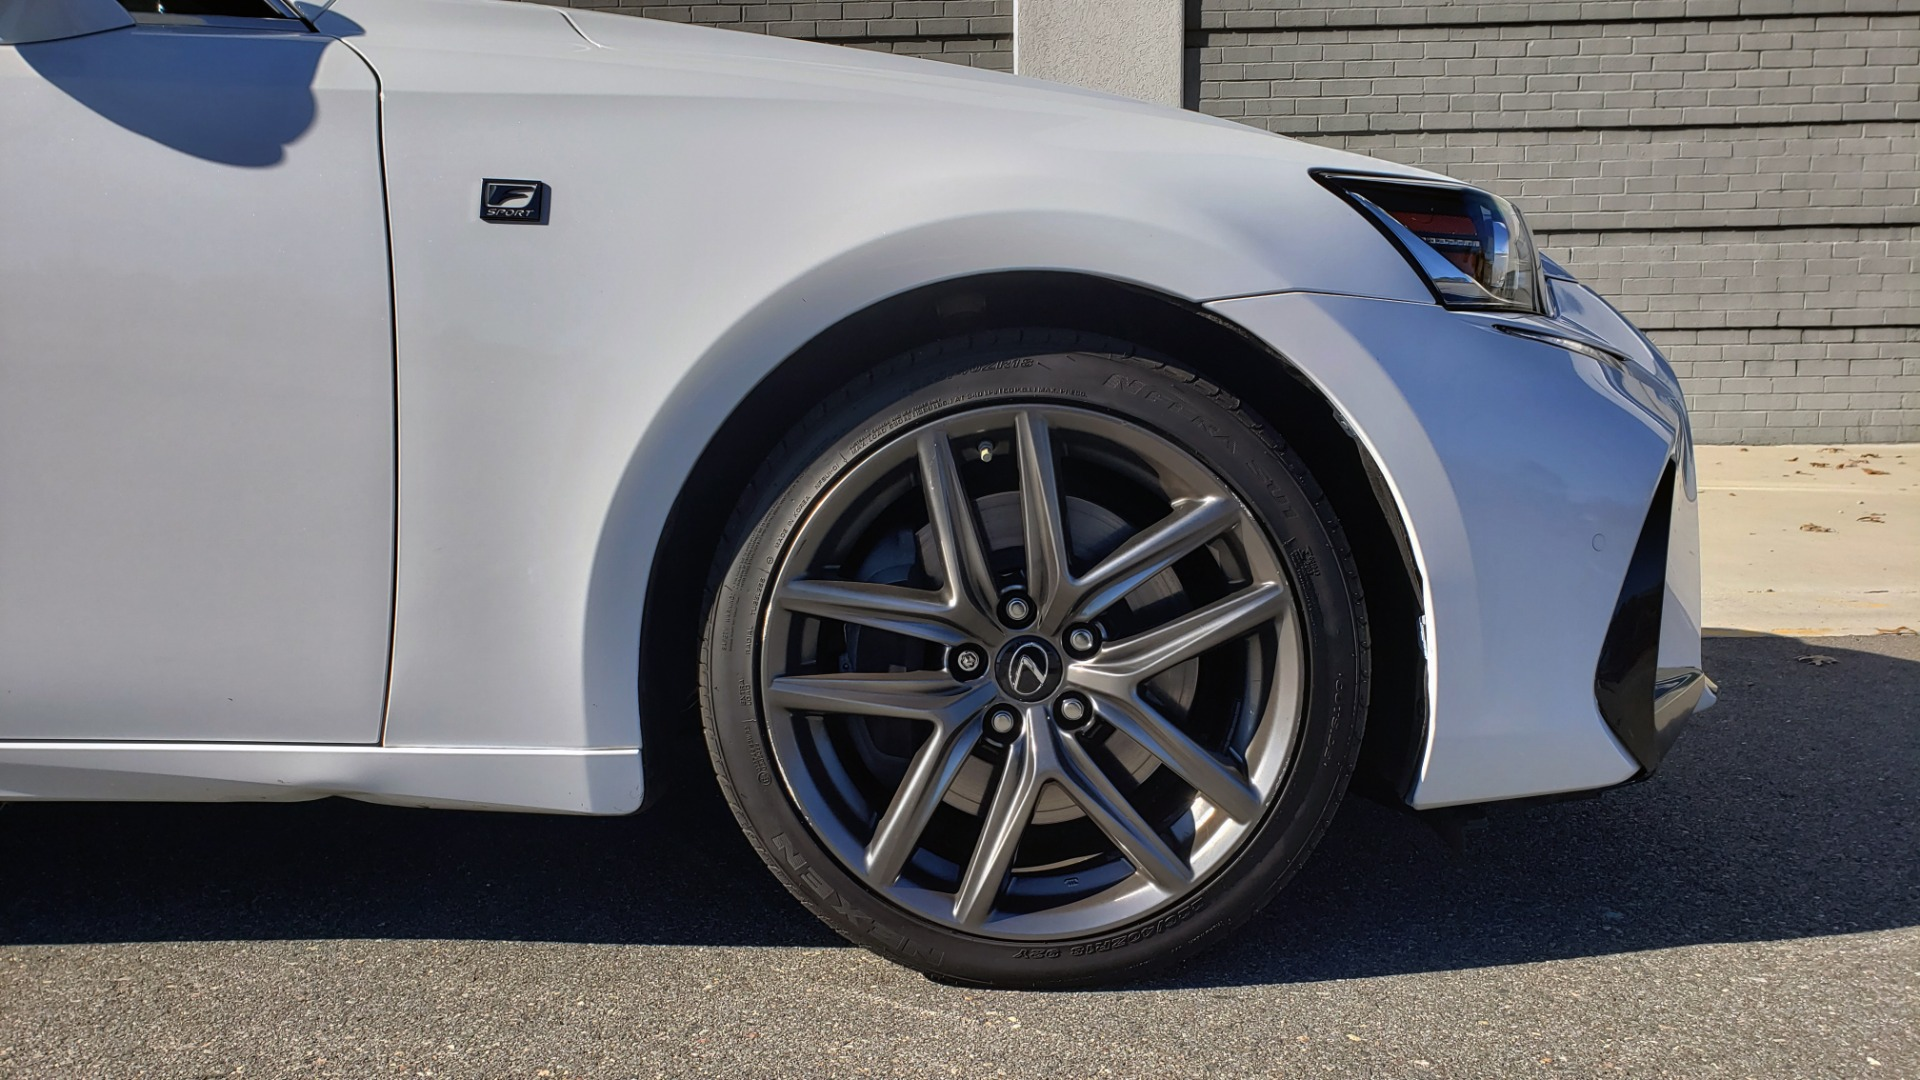 Used 2018 Lexus IS 300 F-SPORT / BSM / SUNROOF / REARVIEW / 18IN WHEELS for sale Sold at Formula Imports in Charlotte NC 28227 75